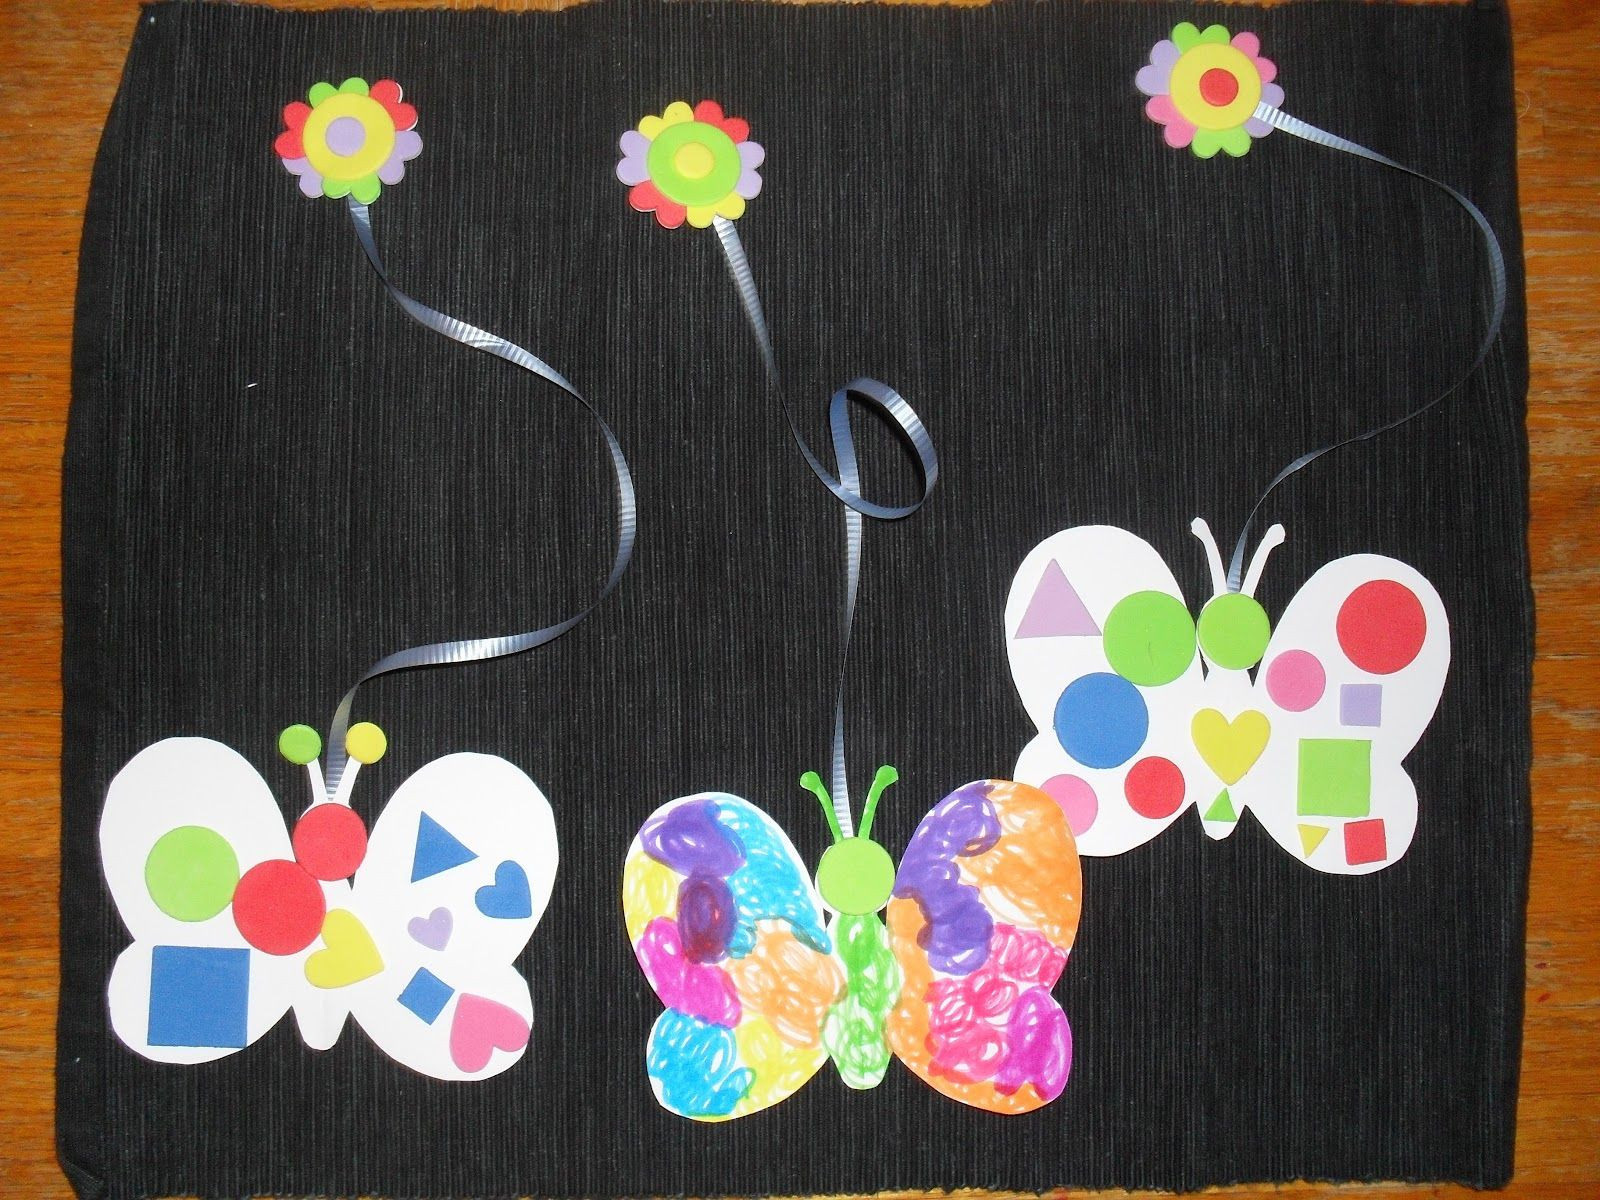 Best ideas about May Crafts For Kids . Save or Pin e11c5606faacdfcc272c7a7ba6af515c 1 600×1 200 pixels Now.